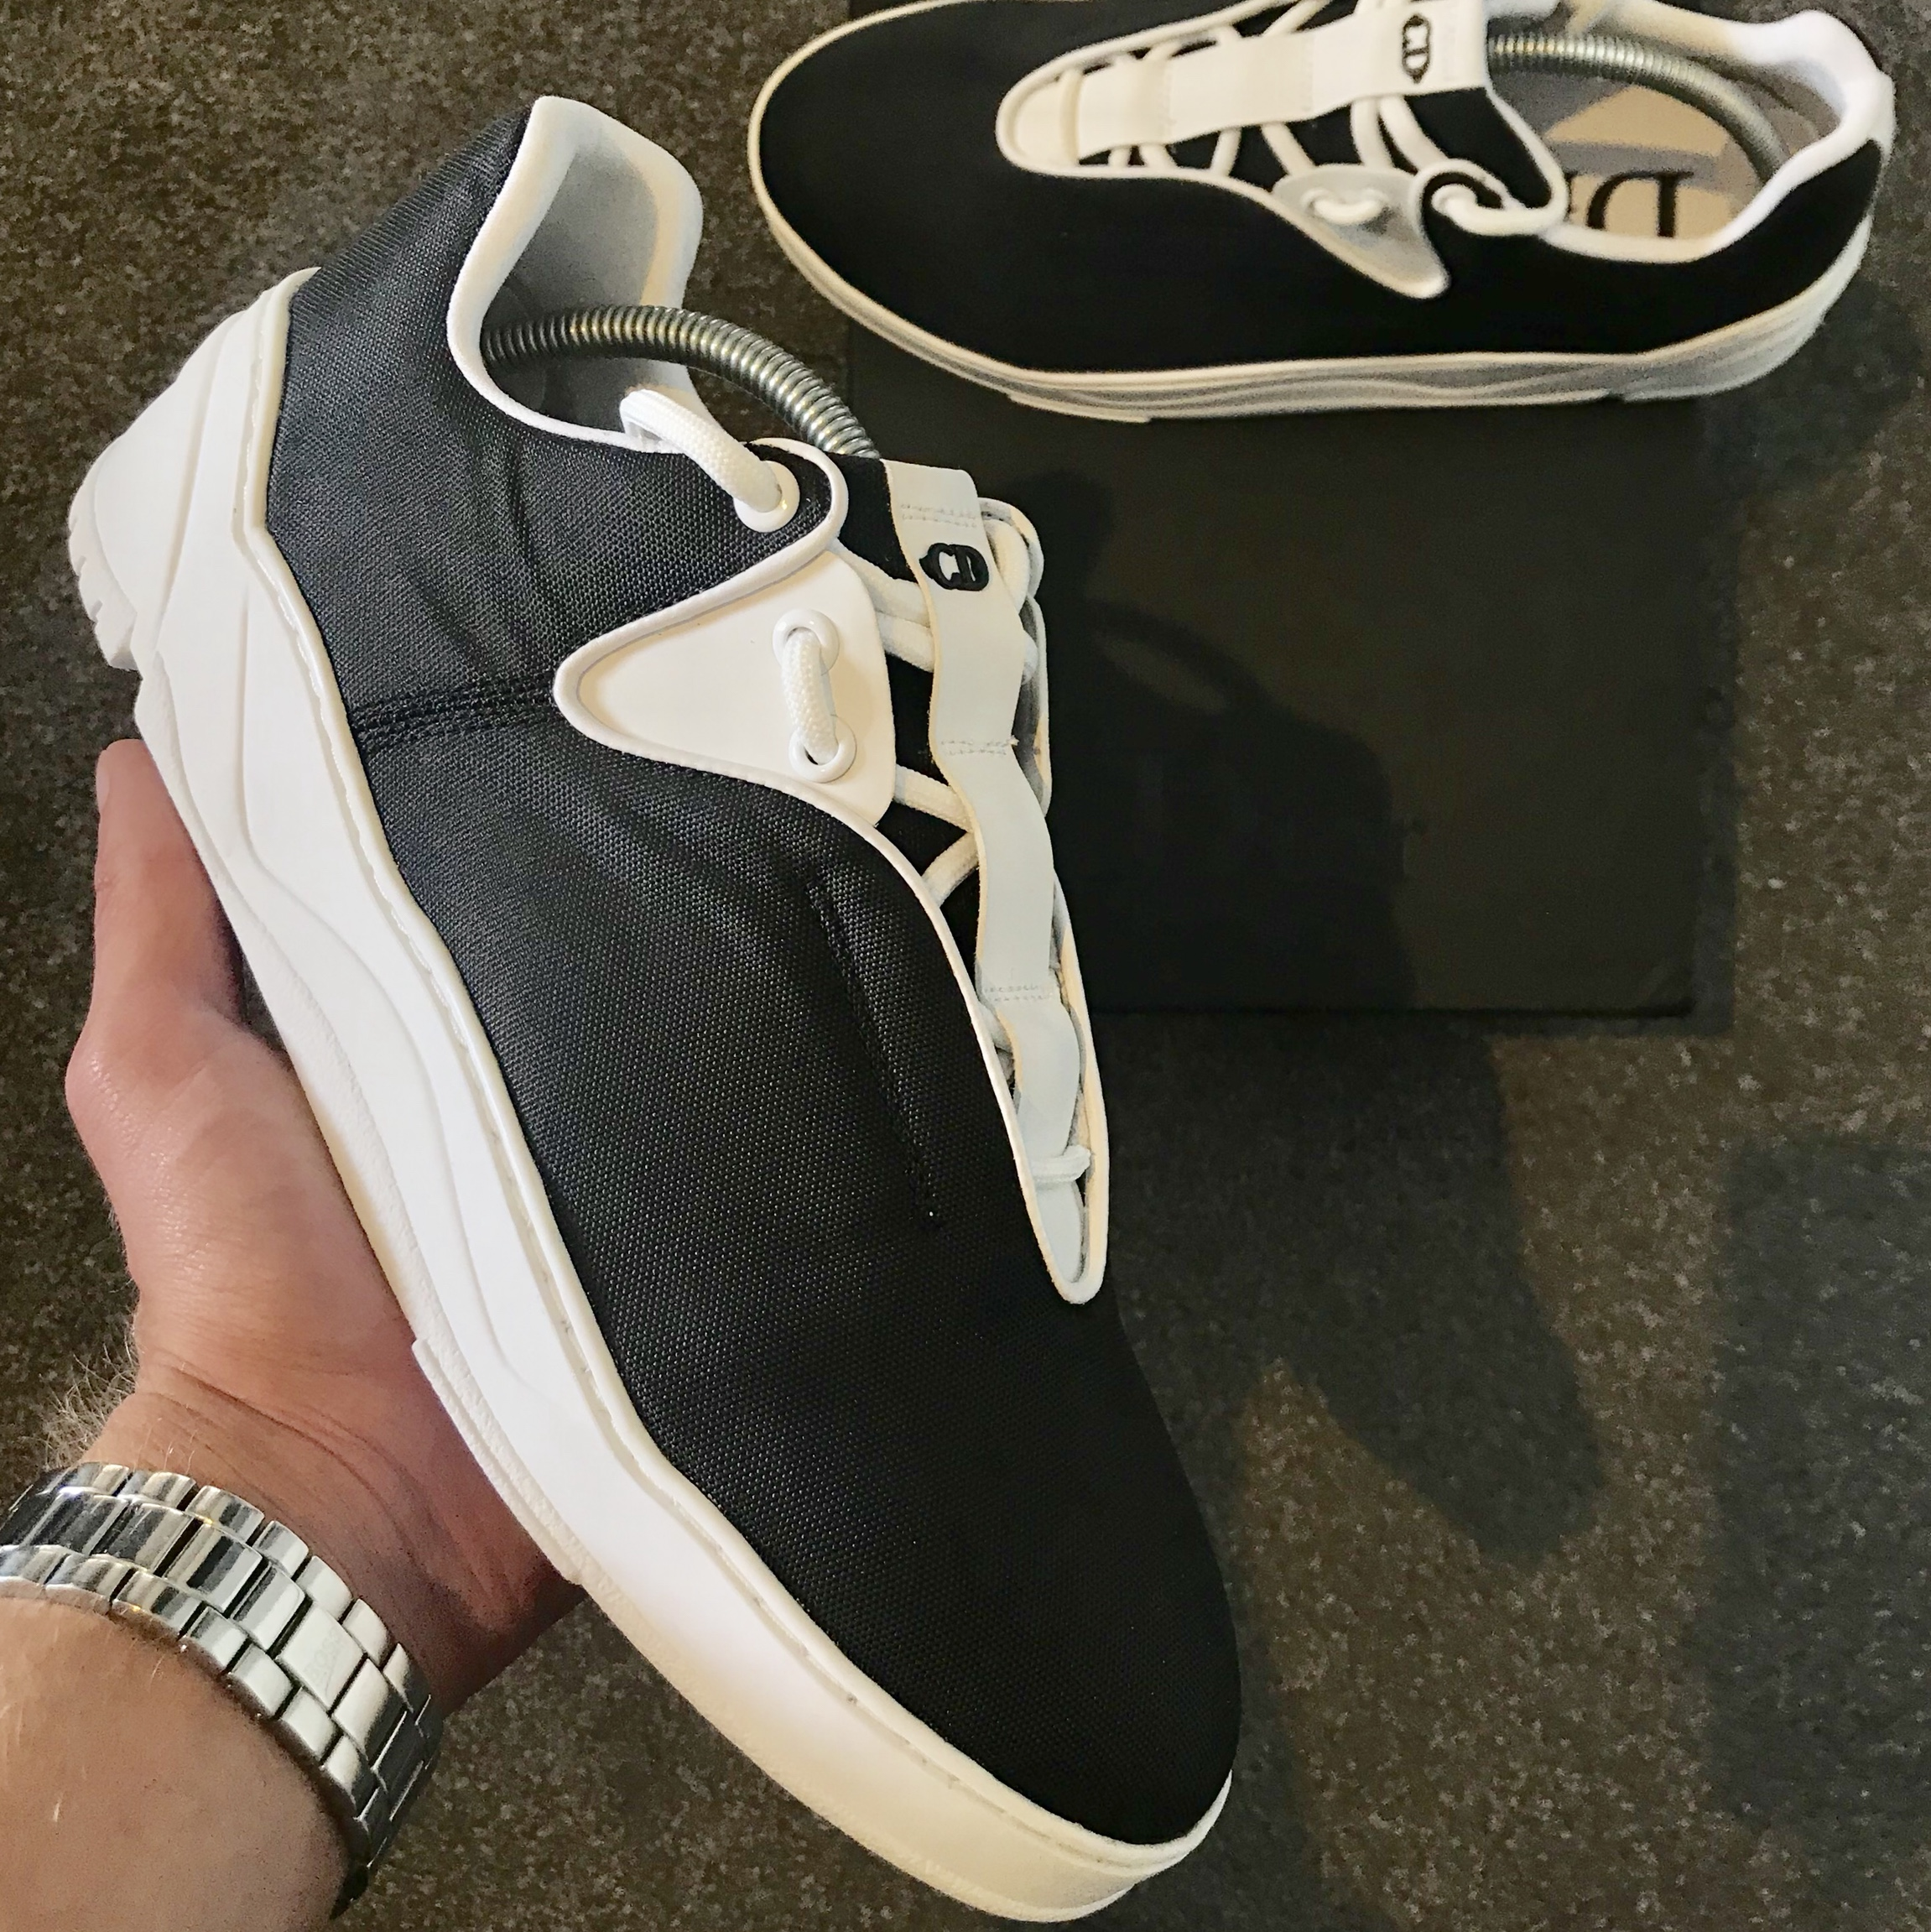 Dior Homme Runners Black and White In